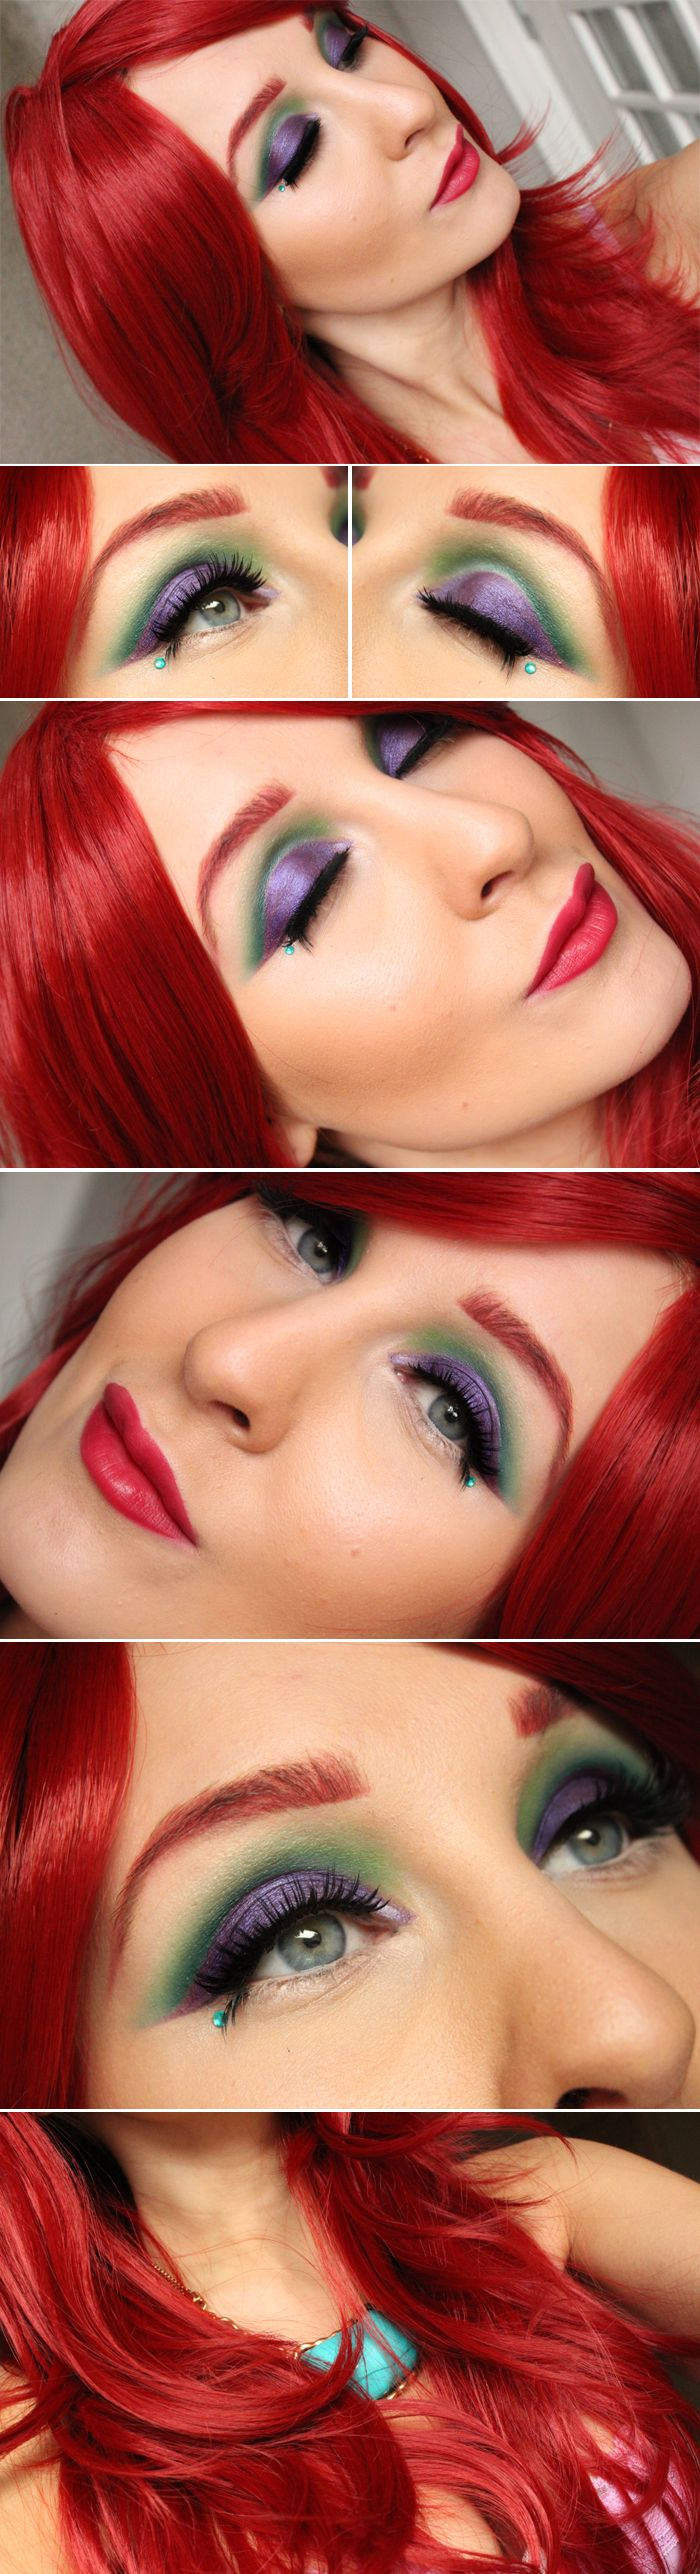 Dagens makeup - Little Mermaid | Make Up - Helen Torsgården ...